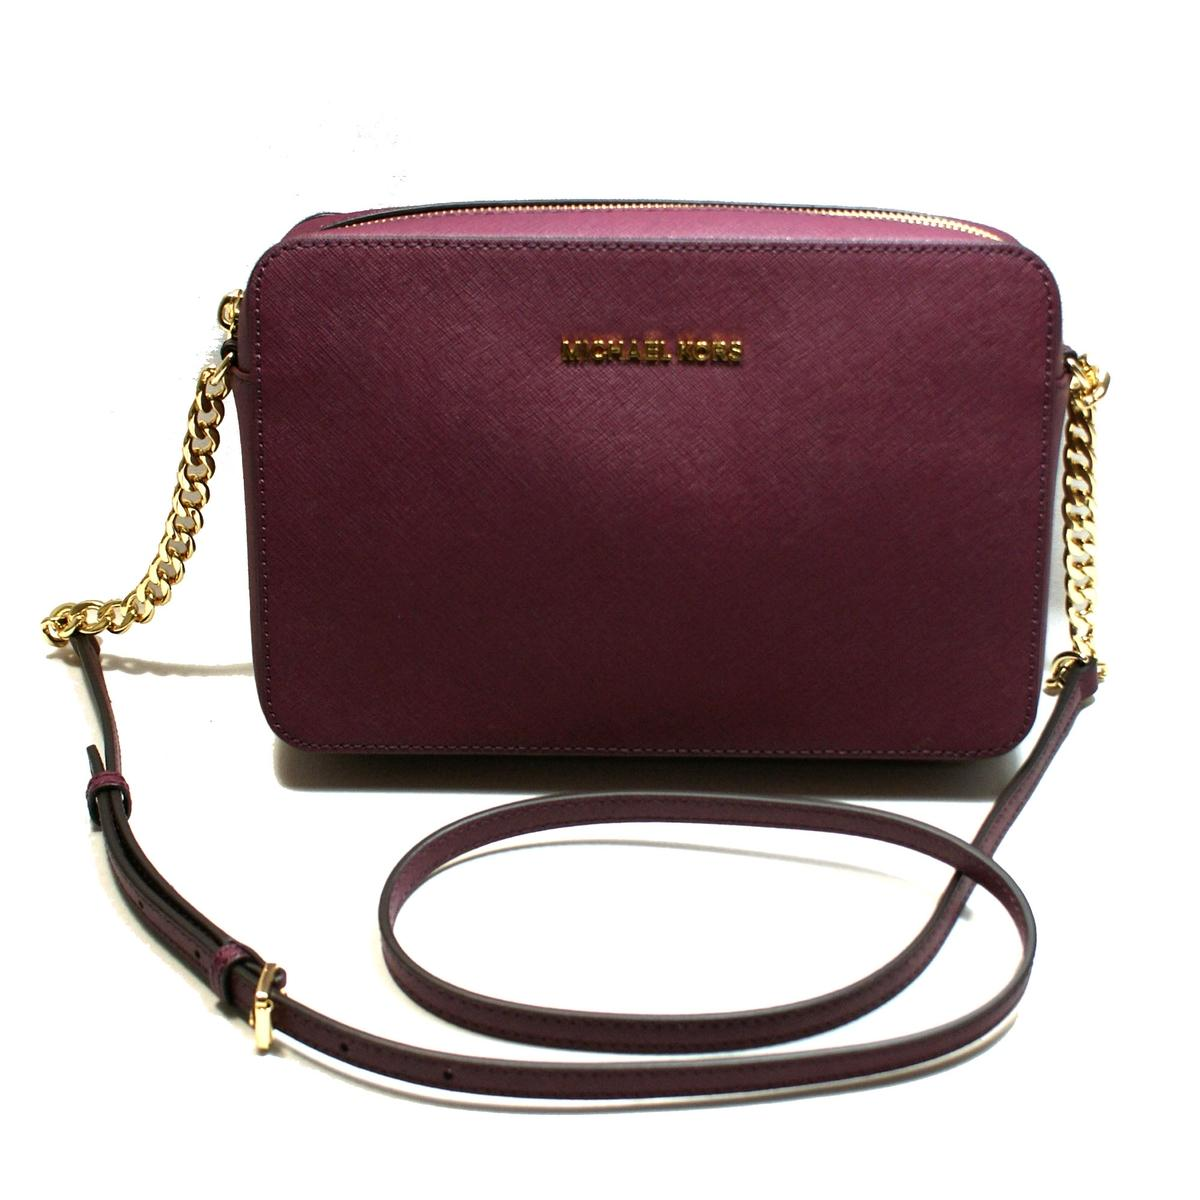 d9e682ab632f Home · Michael Kors · Jet Set Travel East/West Genuine Leather Crossbody Bag  Plum. CLICK THUMBNAIL TO ZOOM. Found ...